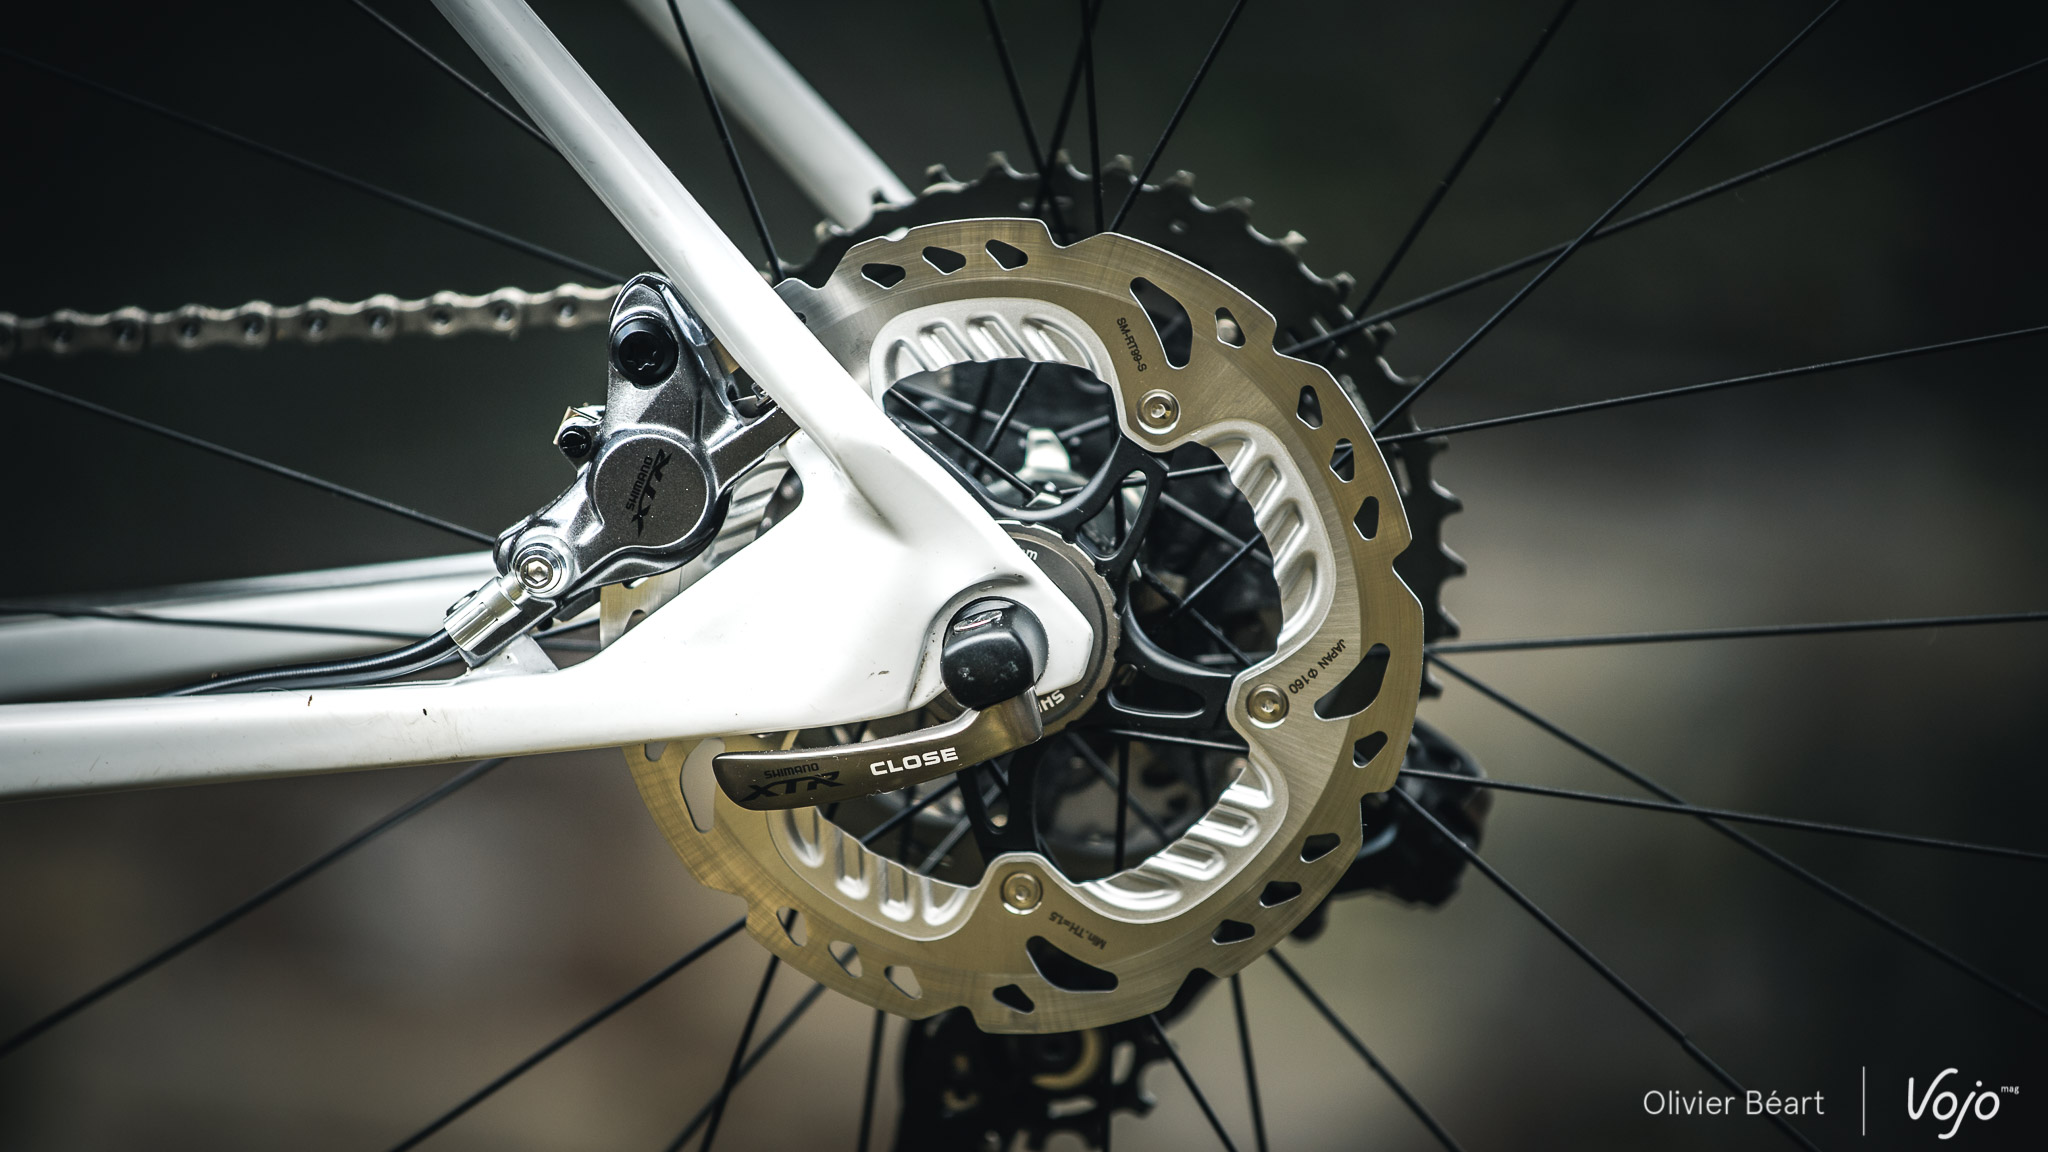 shimano_xtr_freins_test_copyright_obeart_vojomag-1